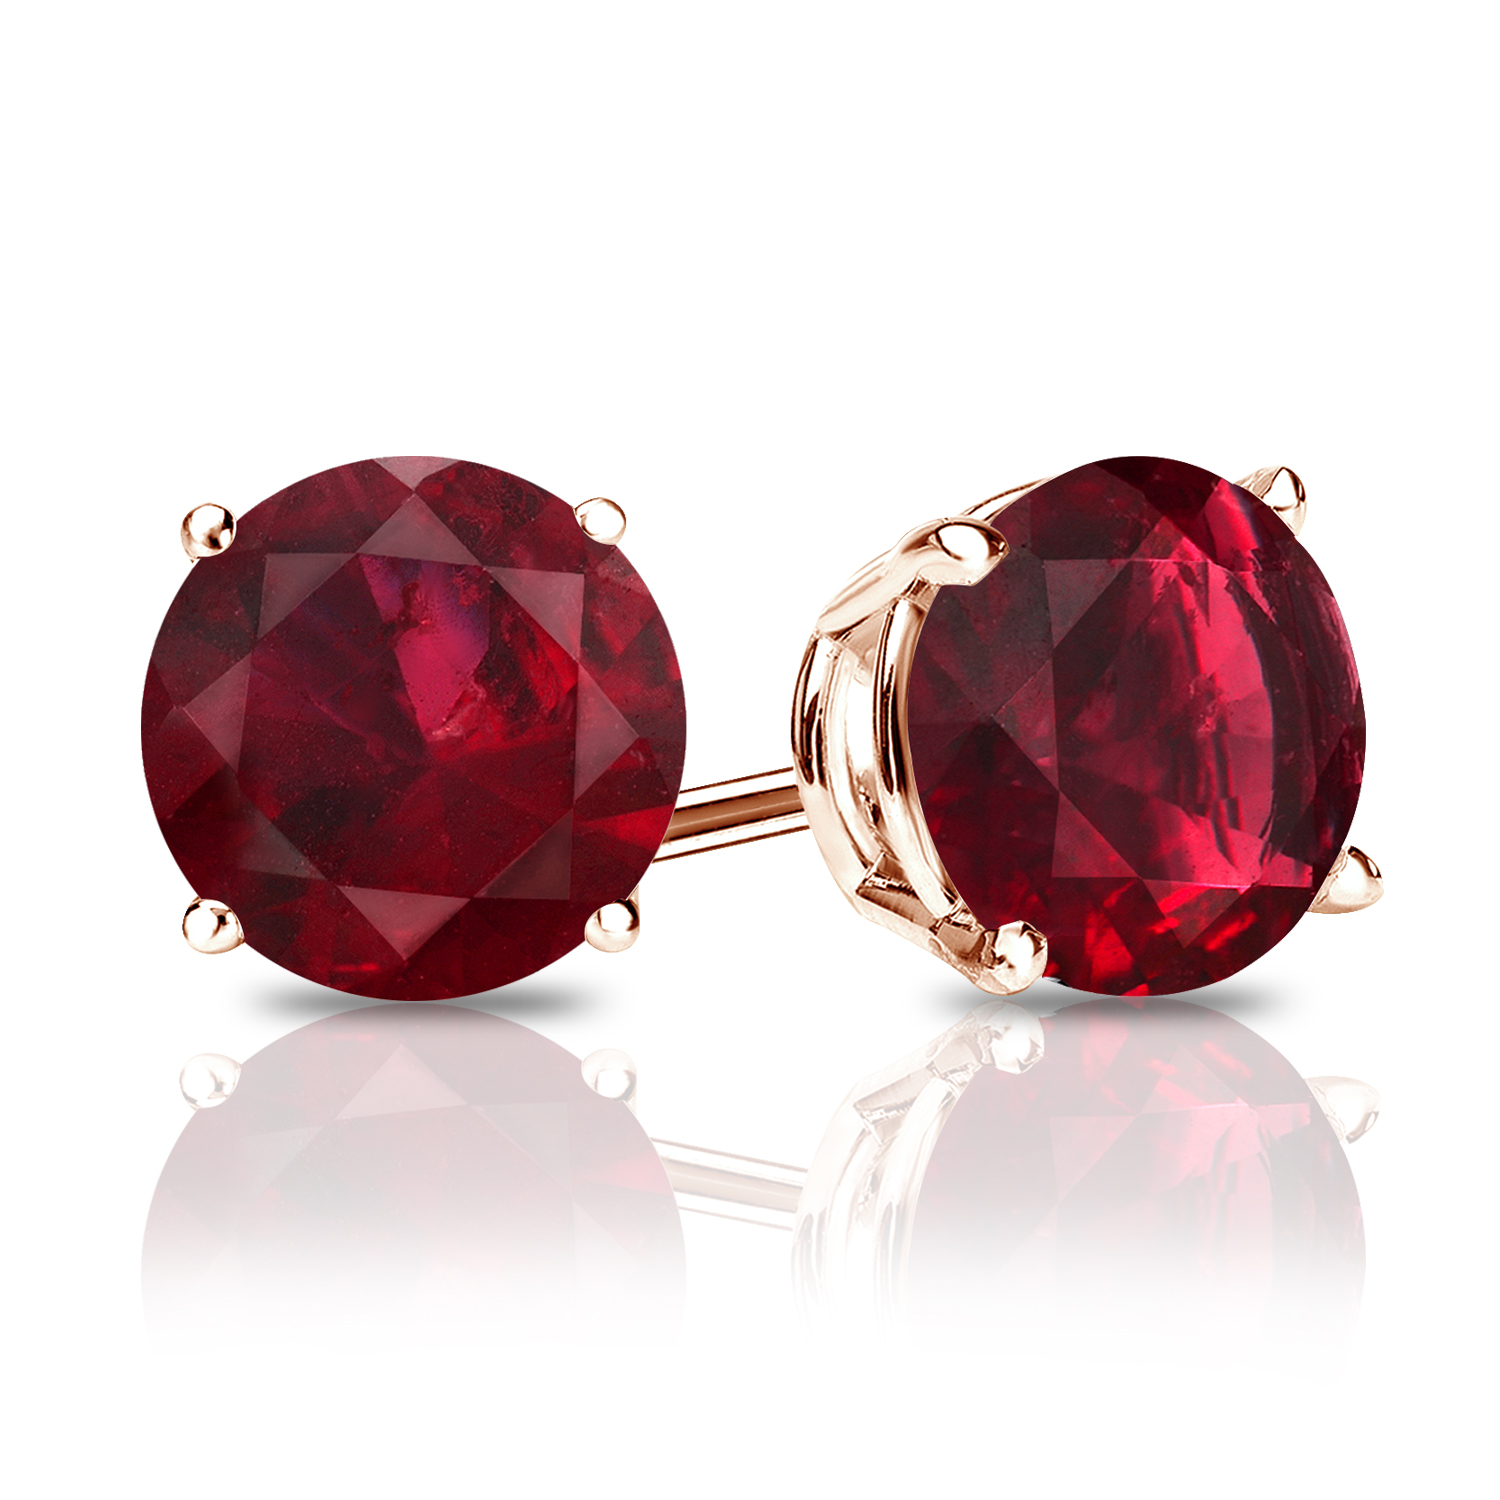 Certified 0.25 cttw Round Ruby Gemstone Stud Earrings in 14k Rose Gold 4-Prong Basket (Red, AAA)